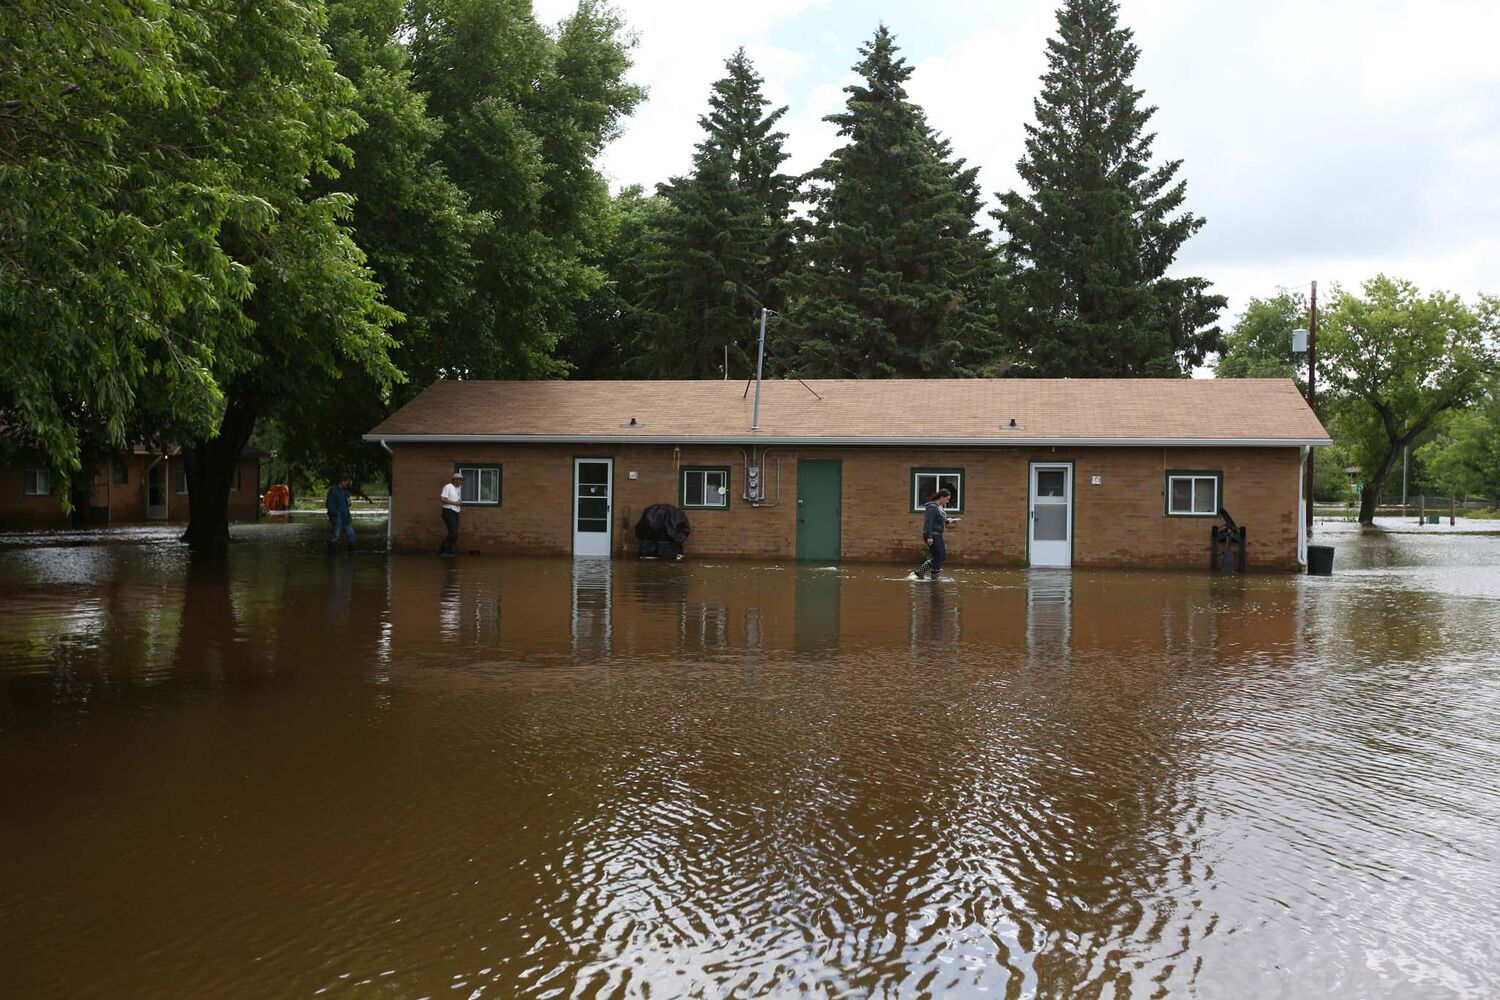 Apartments in Virden sit surrounded by water on Monday after the rising Gopher Creek inundated the building.